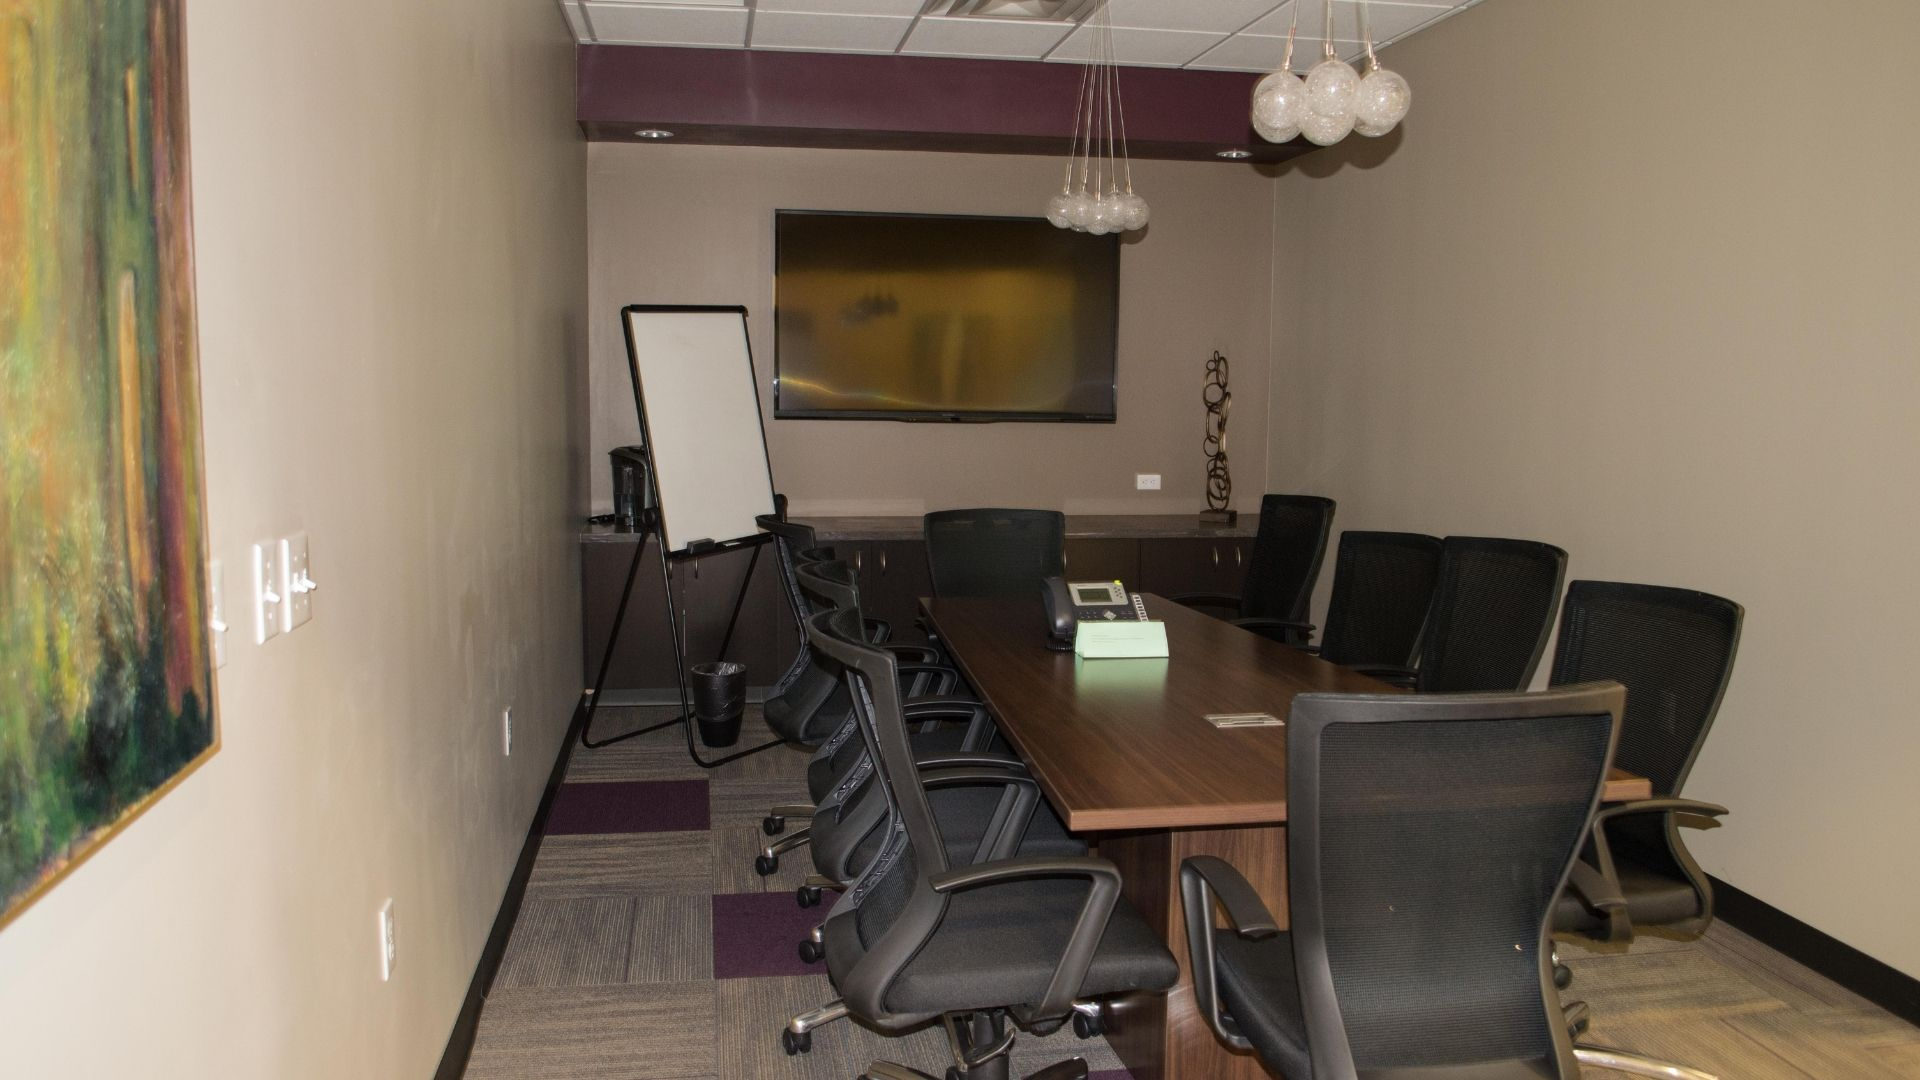 Scottsdale Law Firm - Conference Room - The Arizona Law Doctor